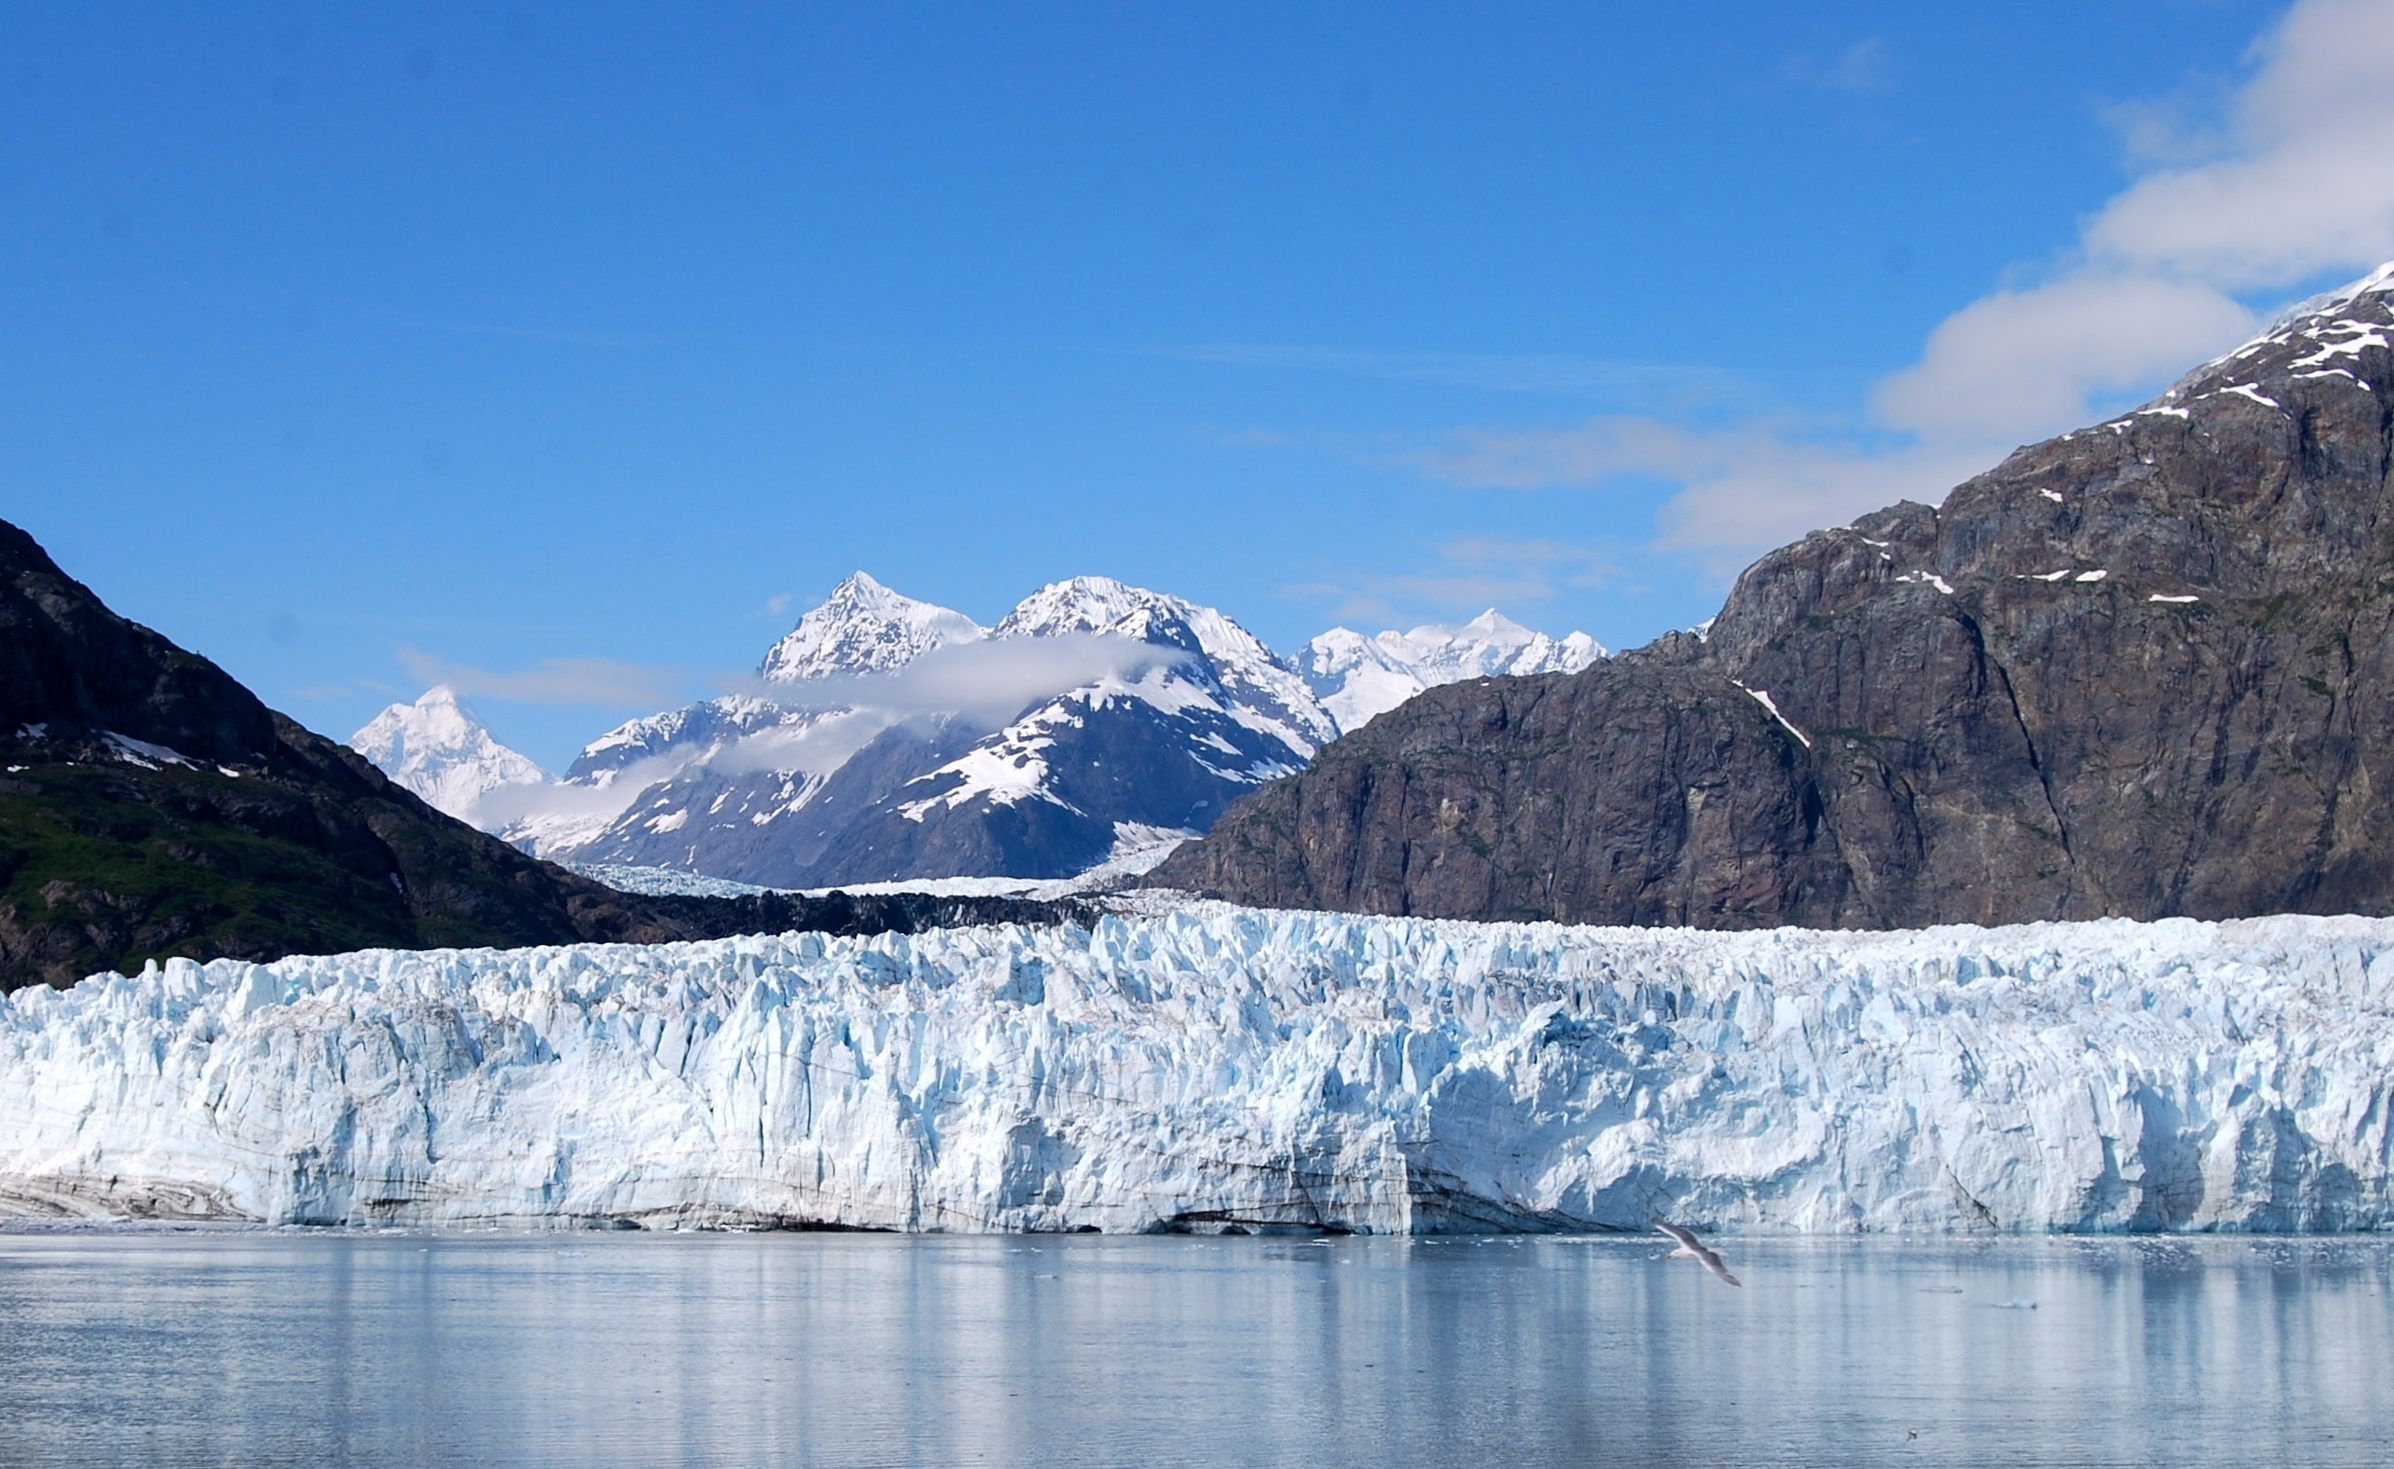 A glacier floating on a lake. The glacier is a wall of ice.